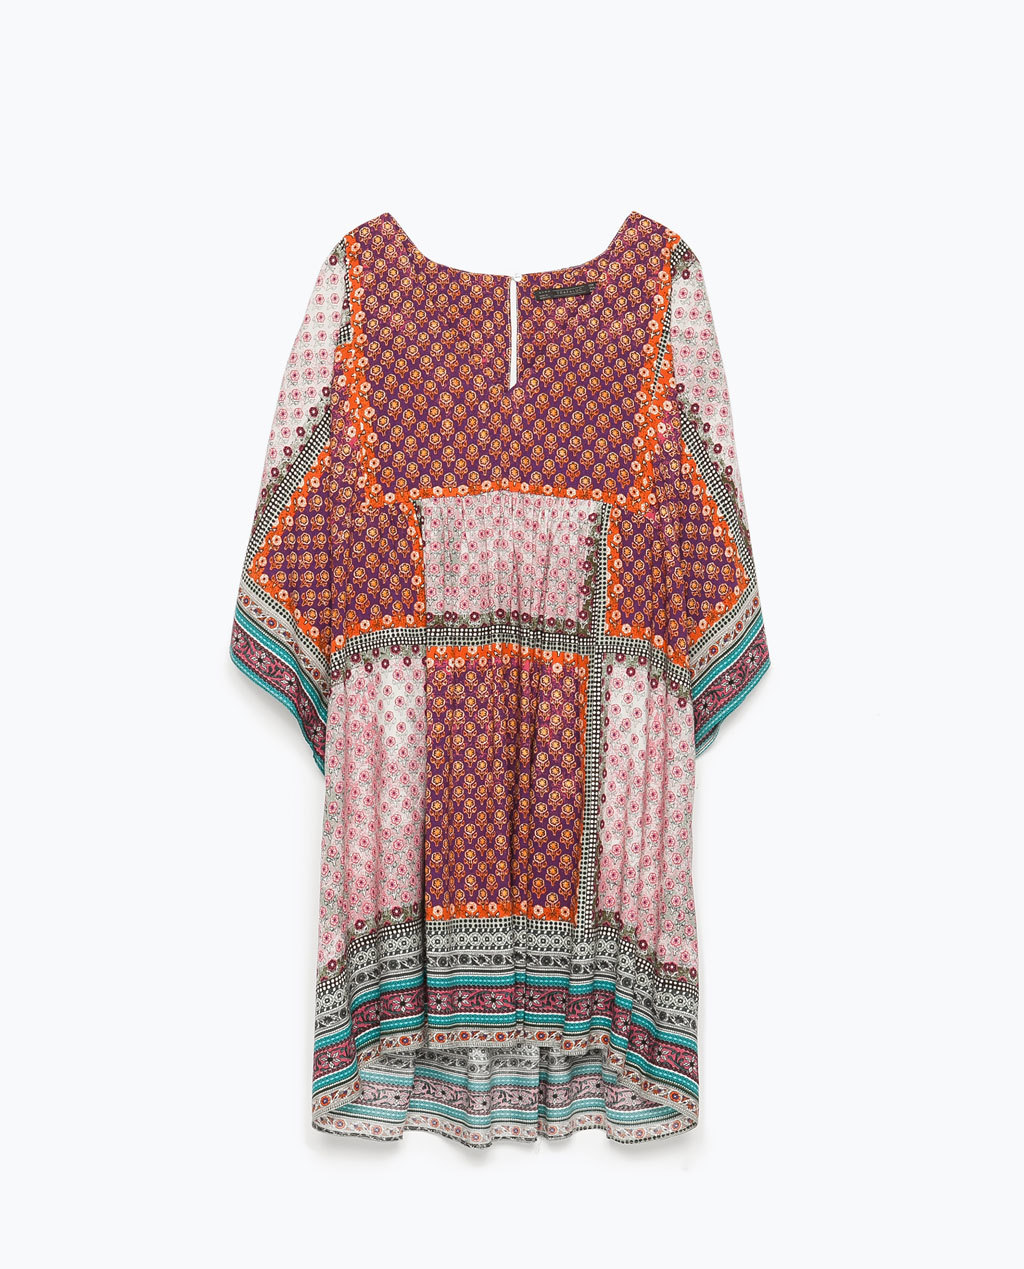 Printed Dress - style: smock; length: mid thigh; neckline: low v-neck; fit: loose; occasions: casual; fibres: viscose/rayon - 100%; predominant colour: multicoloured; sleeve length: 3/4 length; sleeve style: standard; pattern type: fabric; pattern size: standard; pattern: patterned/print; texture group: jersey - stretchy/drapey; season: s/s 2015; multicoloured: multicoloured; wardrobe: highlight